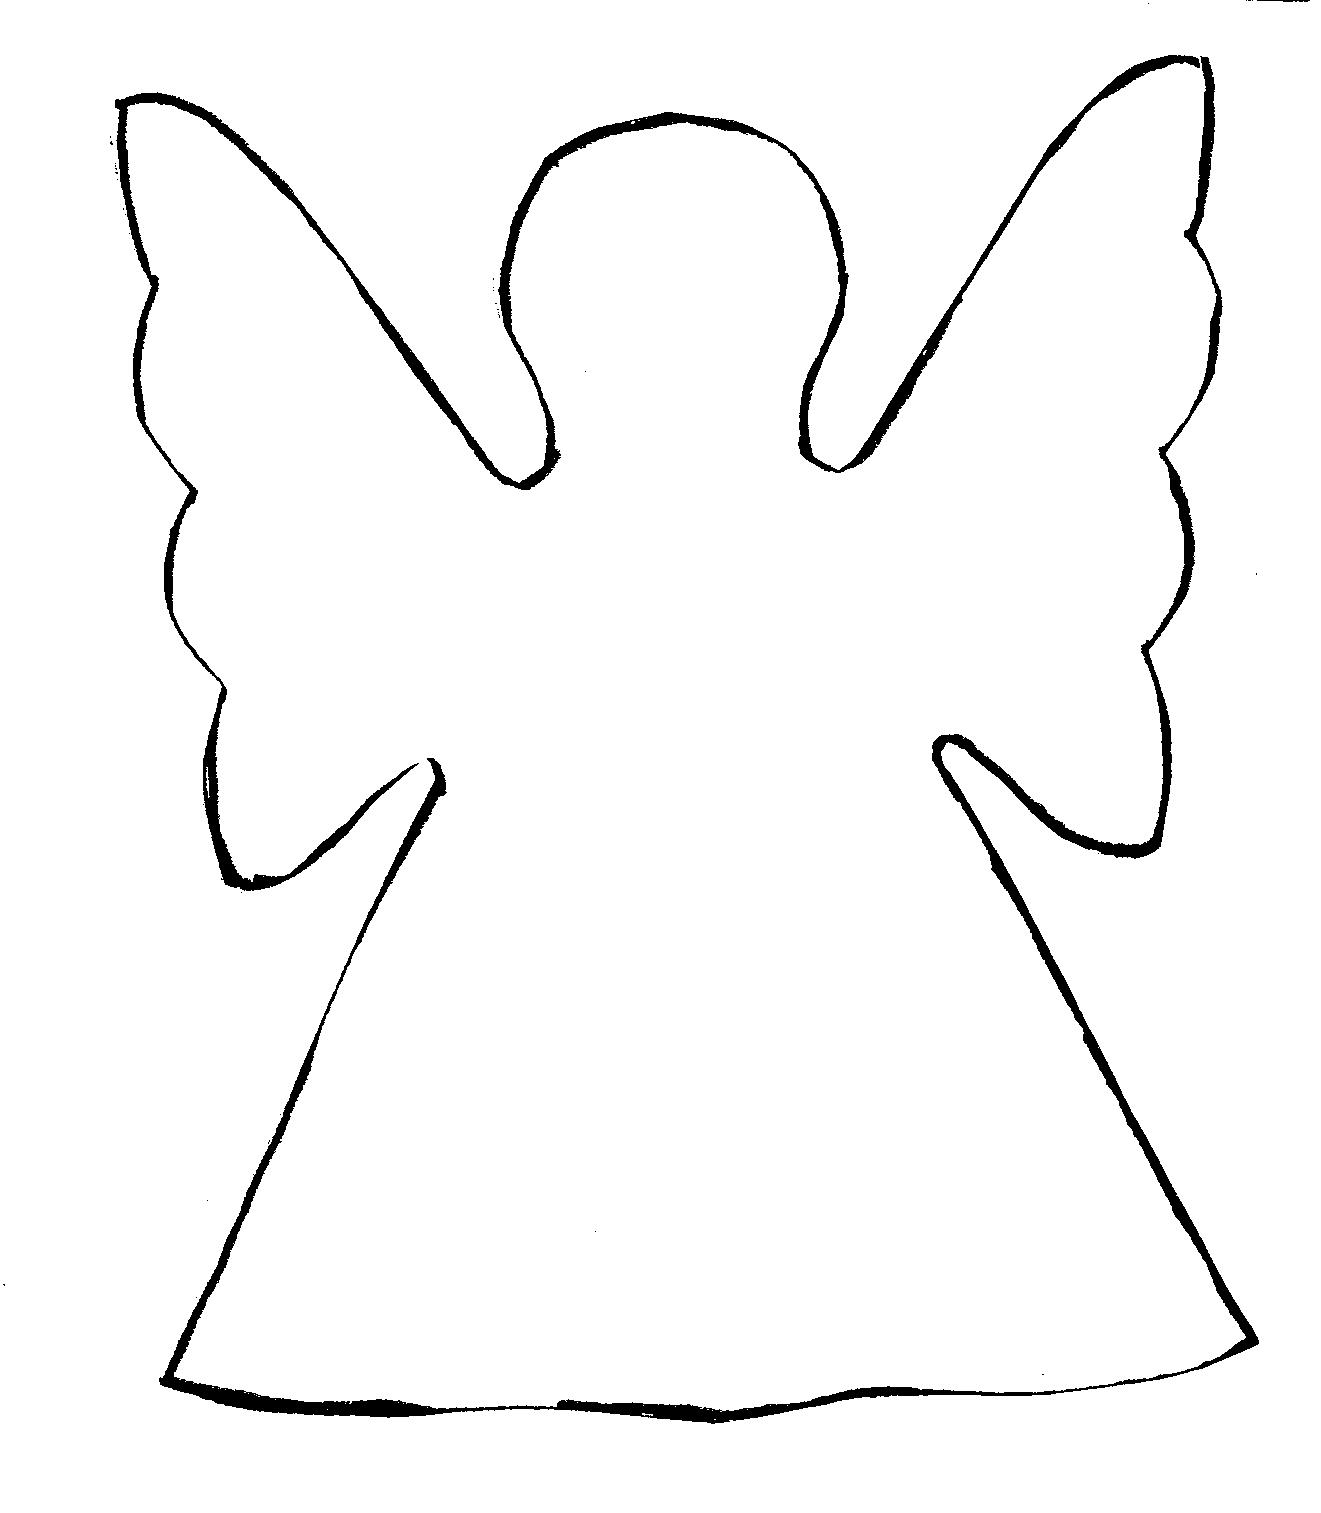 Clip Art Clipart Angel simple angel outline clipart kid 22 wings template free cliparts that you can download to you